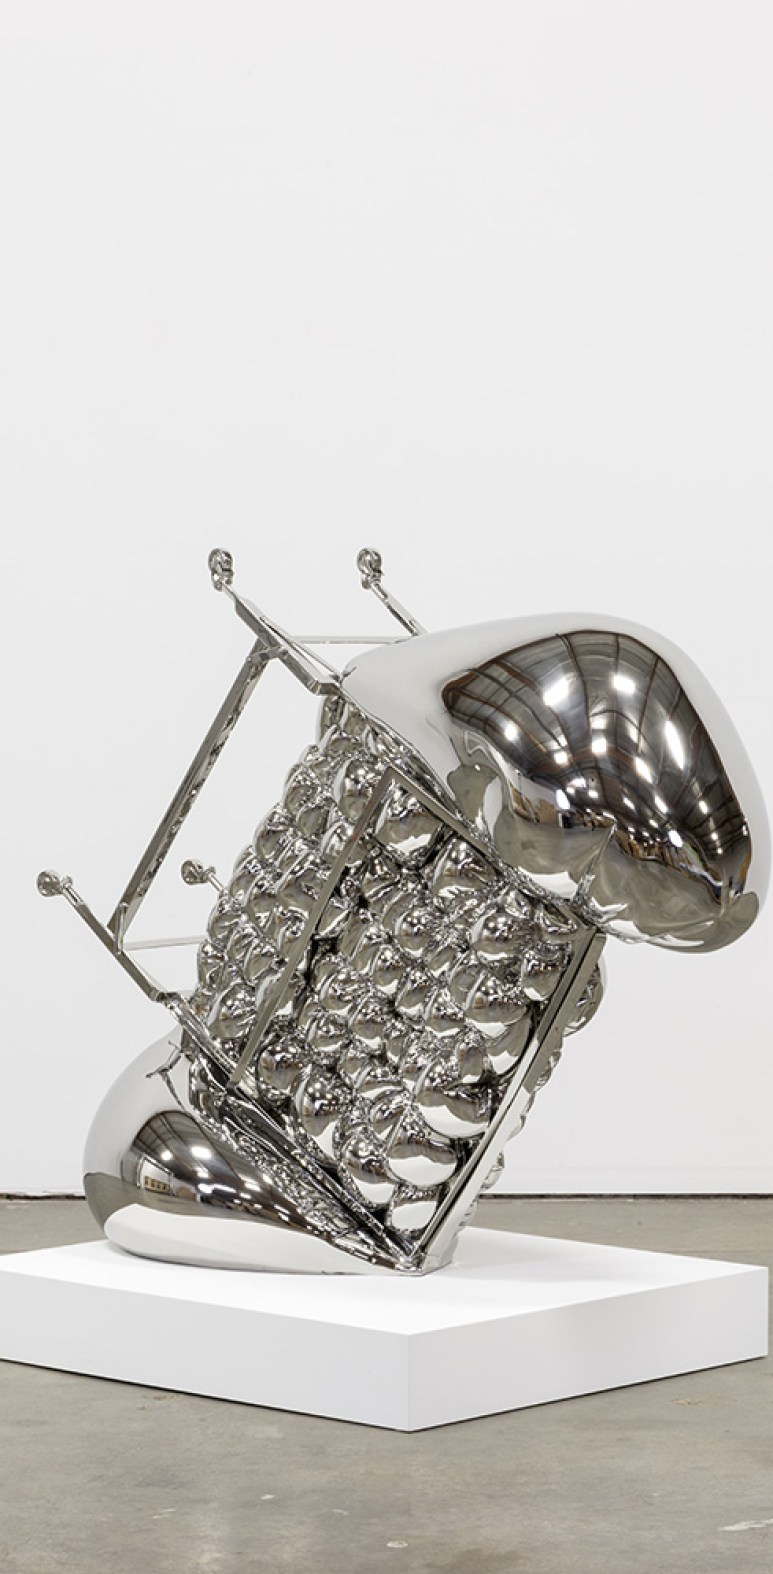 Chrome Sculptures by Joel Morrison